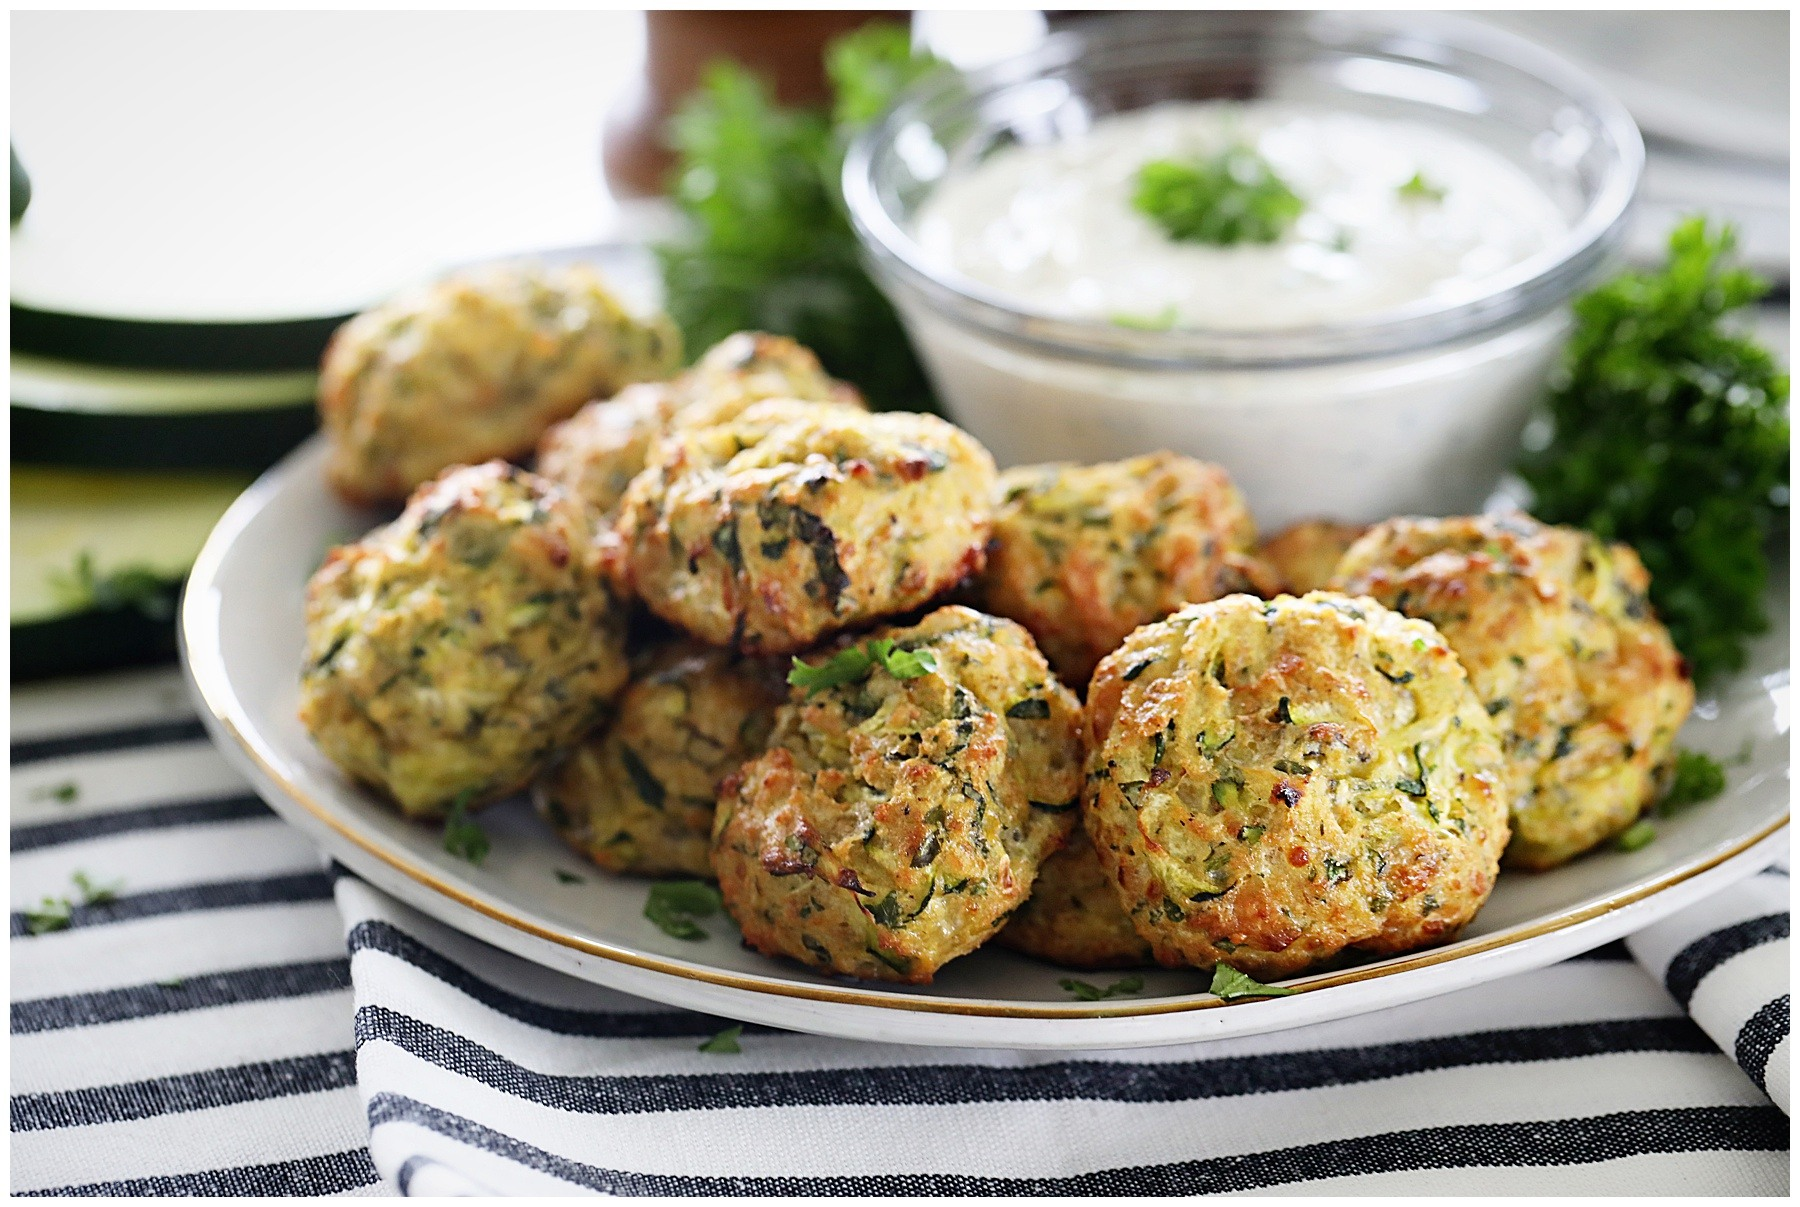 Zucchini Bites with cream garlic dip